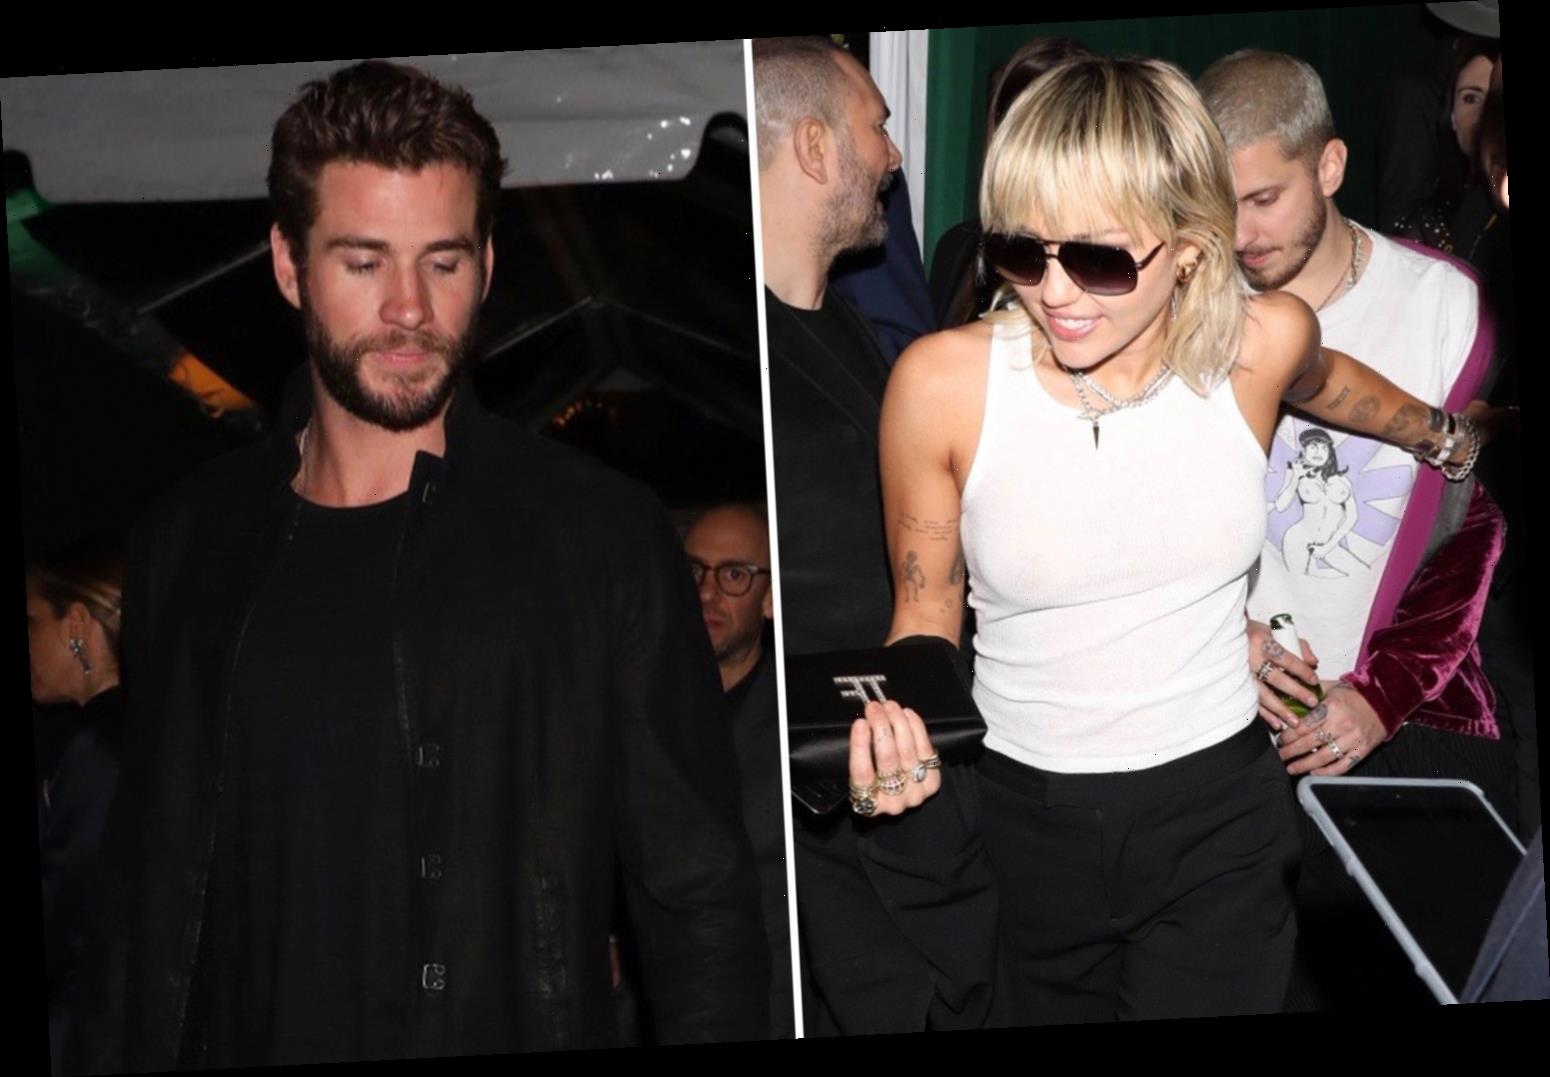 Exes Miley Cyrus and Liam Hemsworth avoid awkward run-in at WME Pre-Oscars party weeks after finalizing their divorce